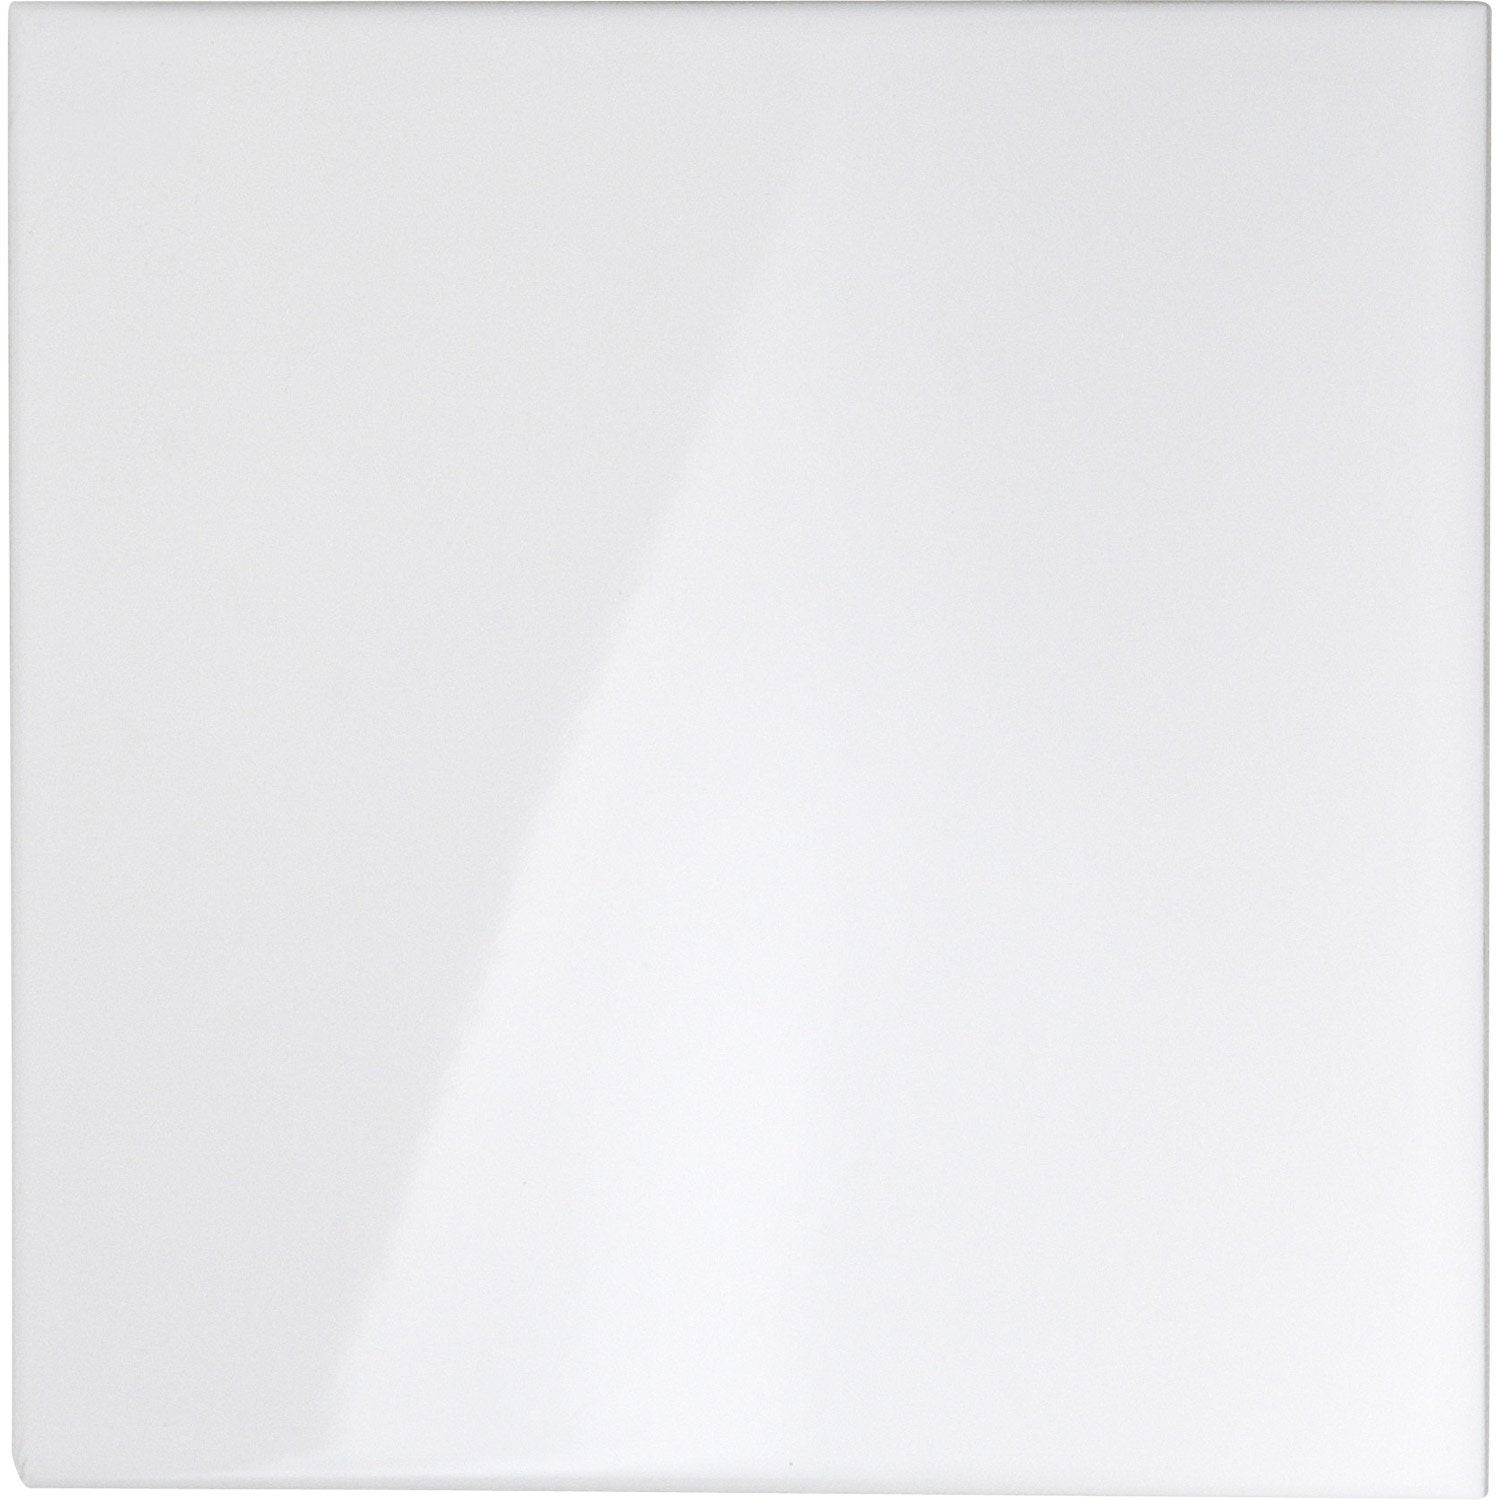 Carrelage blanc brillant 20x20 for Carrelage blanc brillant 20x20